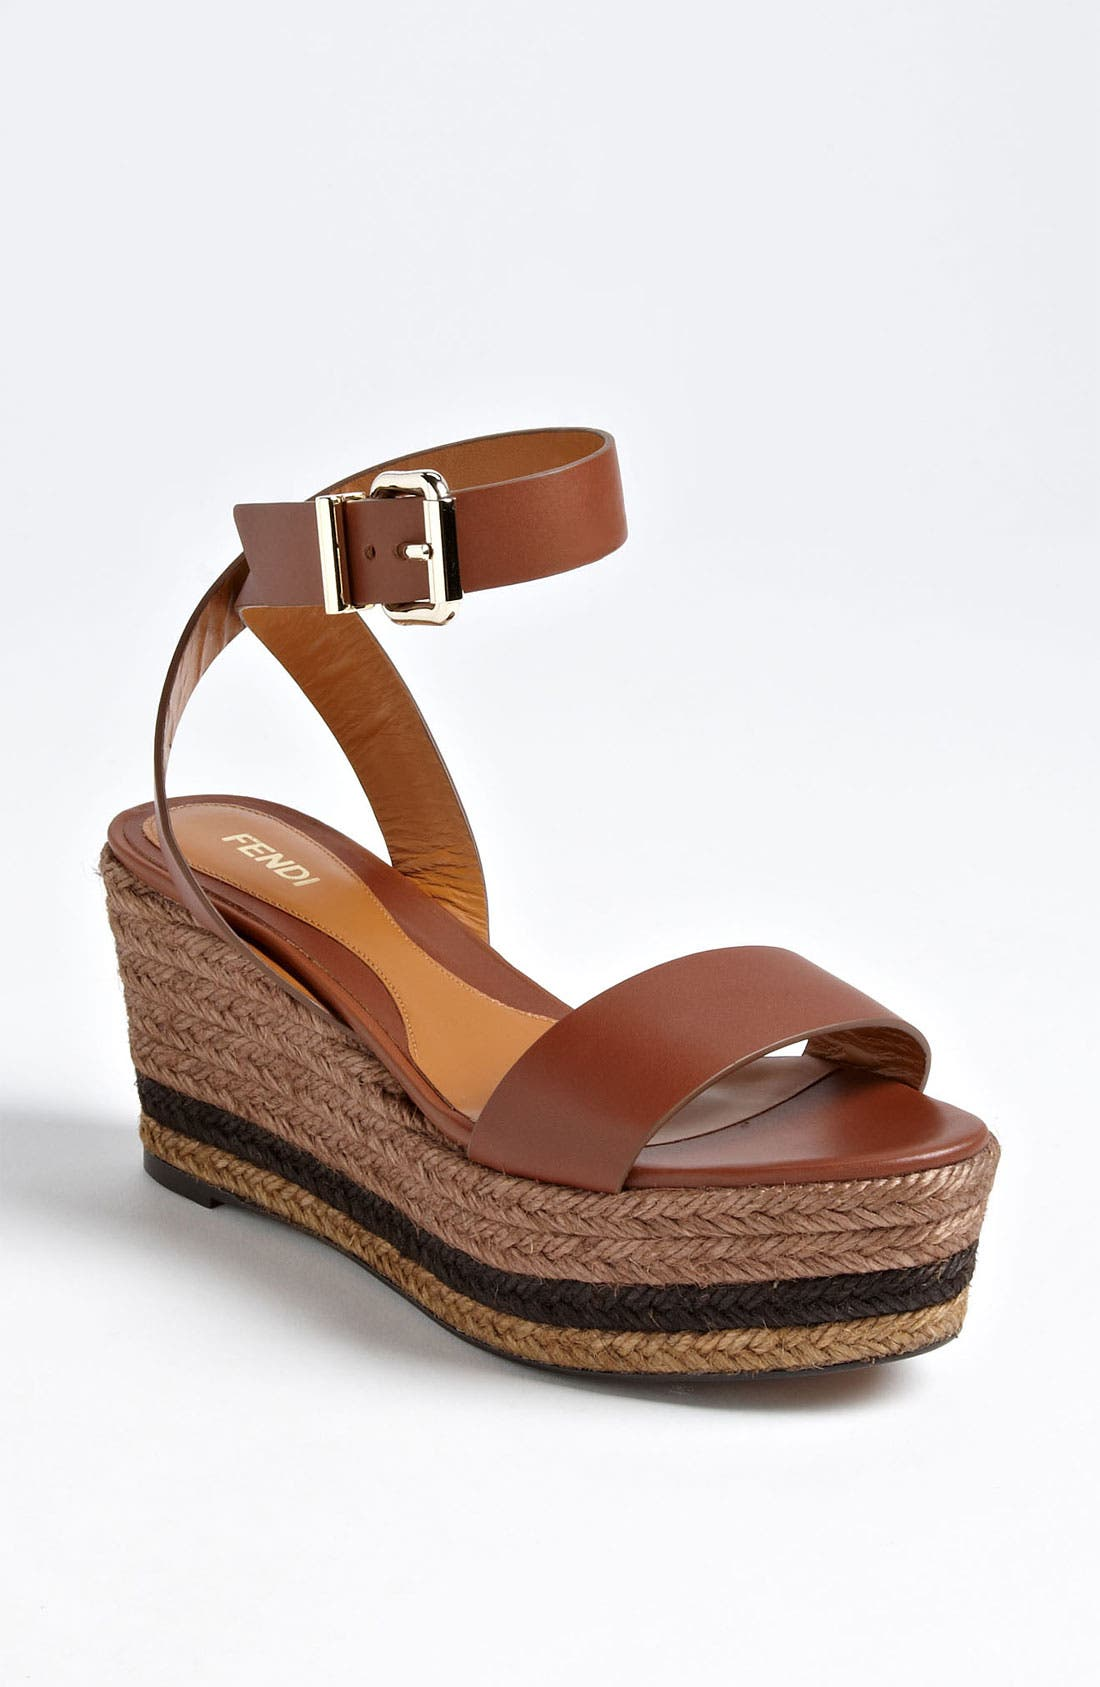 Alternate Image 1 Selected - Fendi 'Pequin' Sandal